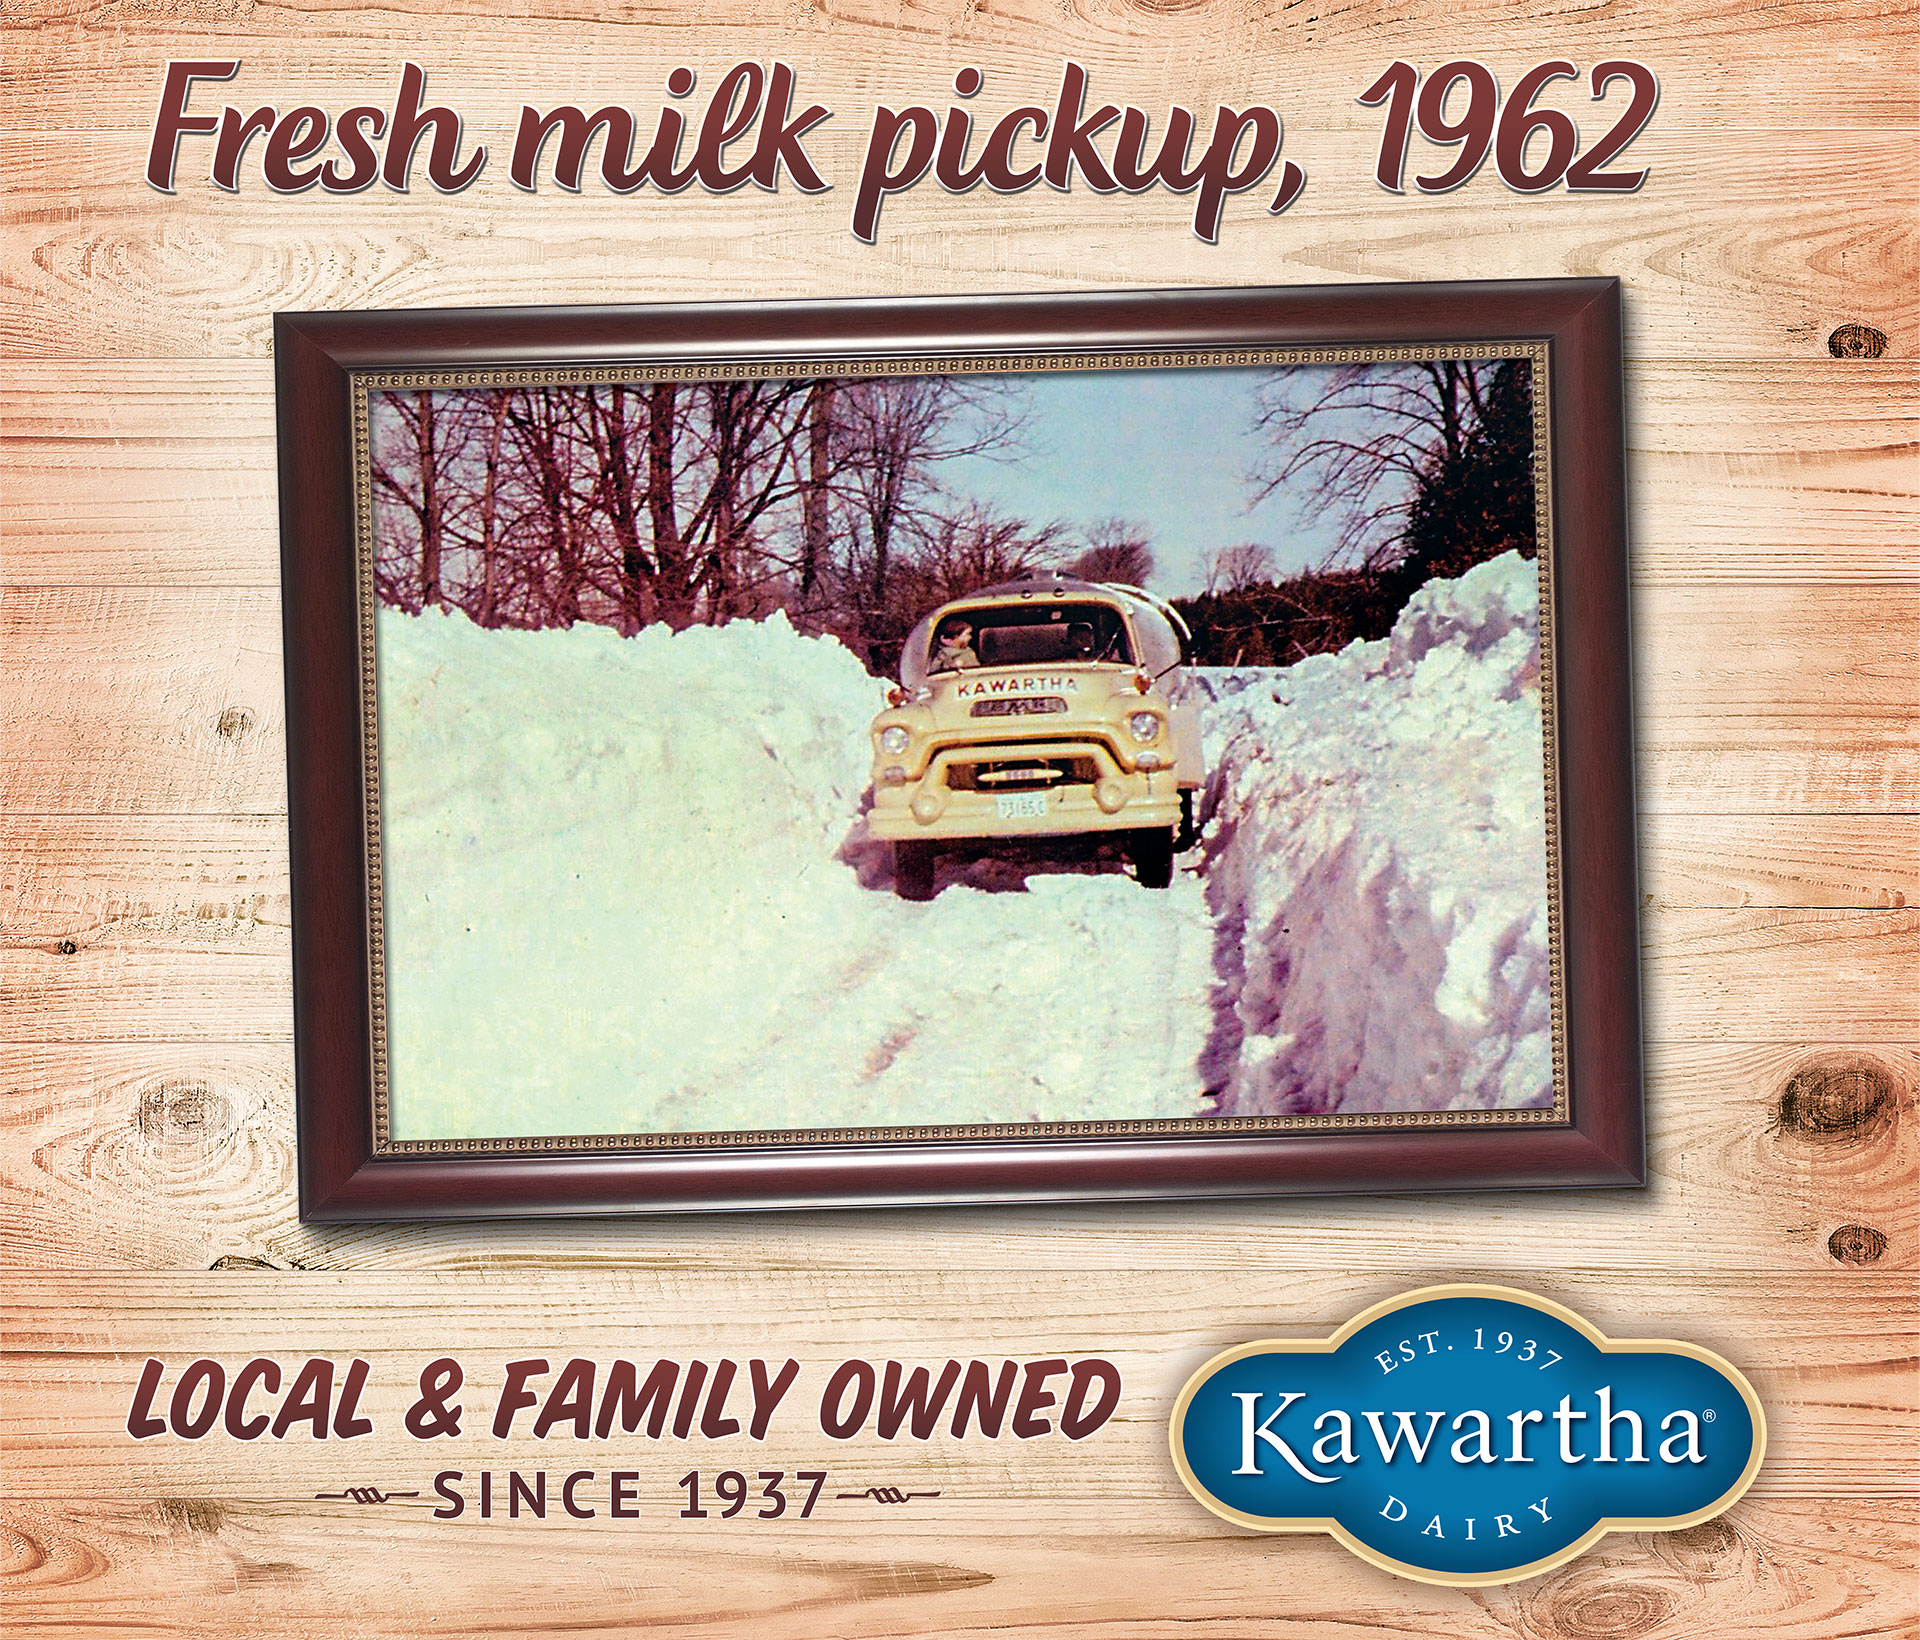 Fresh Milk Pickup, 1962 - Local & Family Owned since 1937